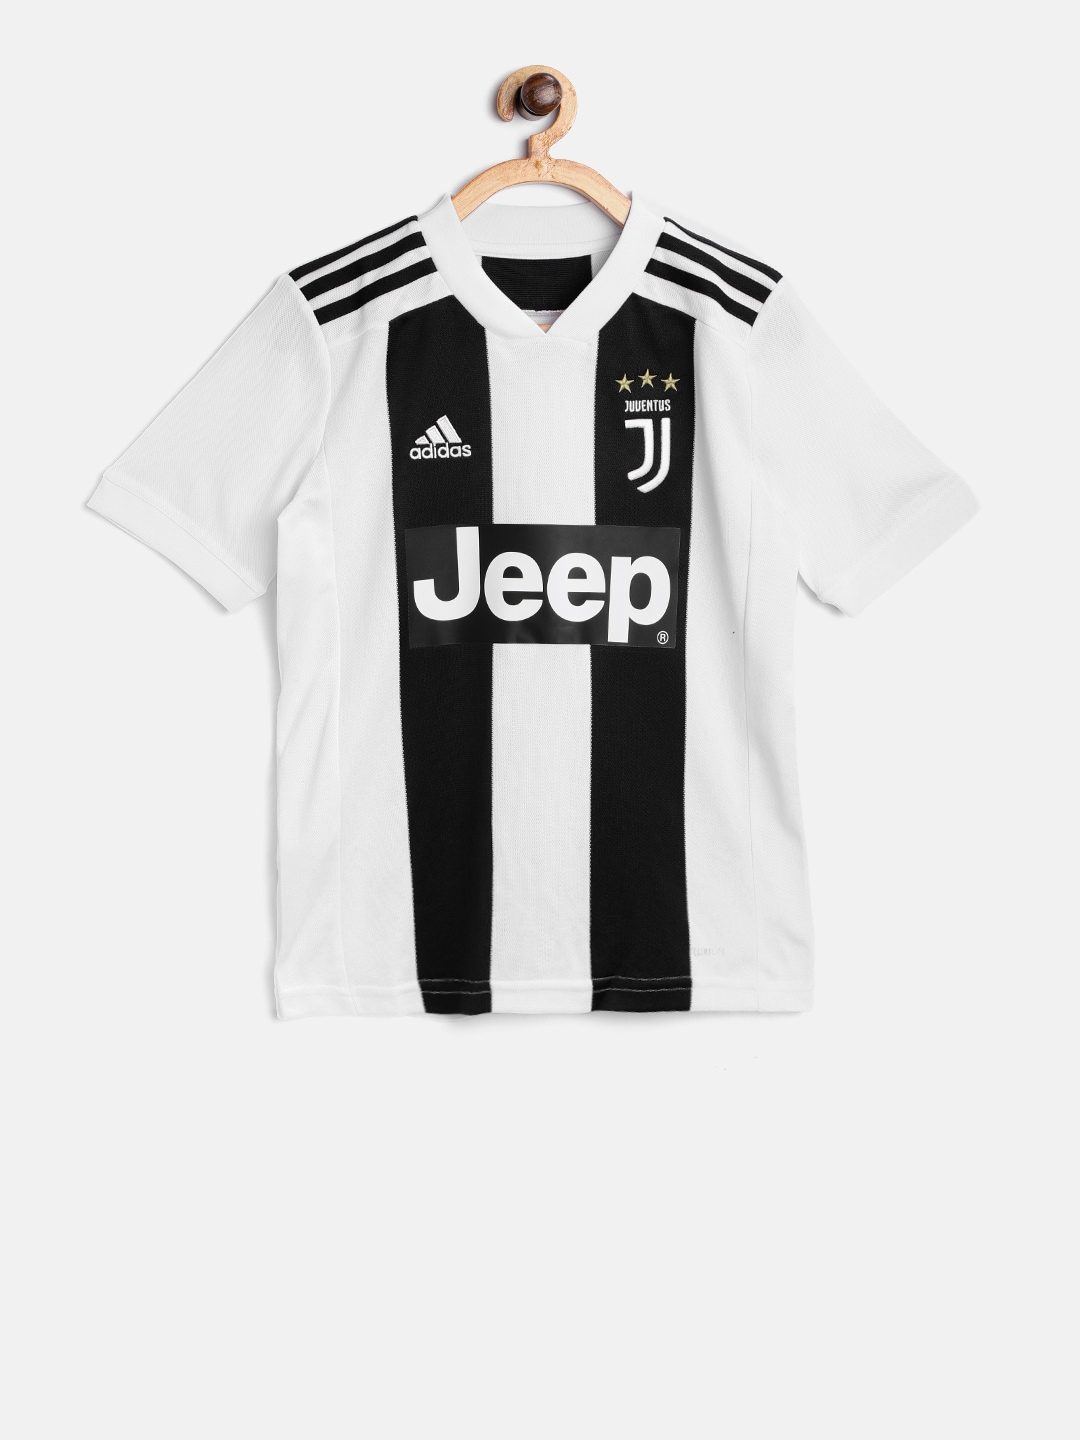 387a26b43d5 Adidas Jersey - Buy Adidas Jersey online in India